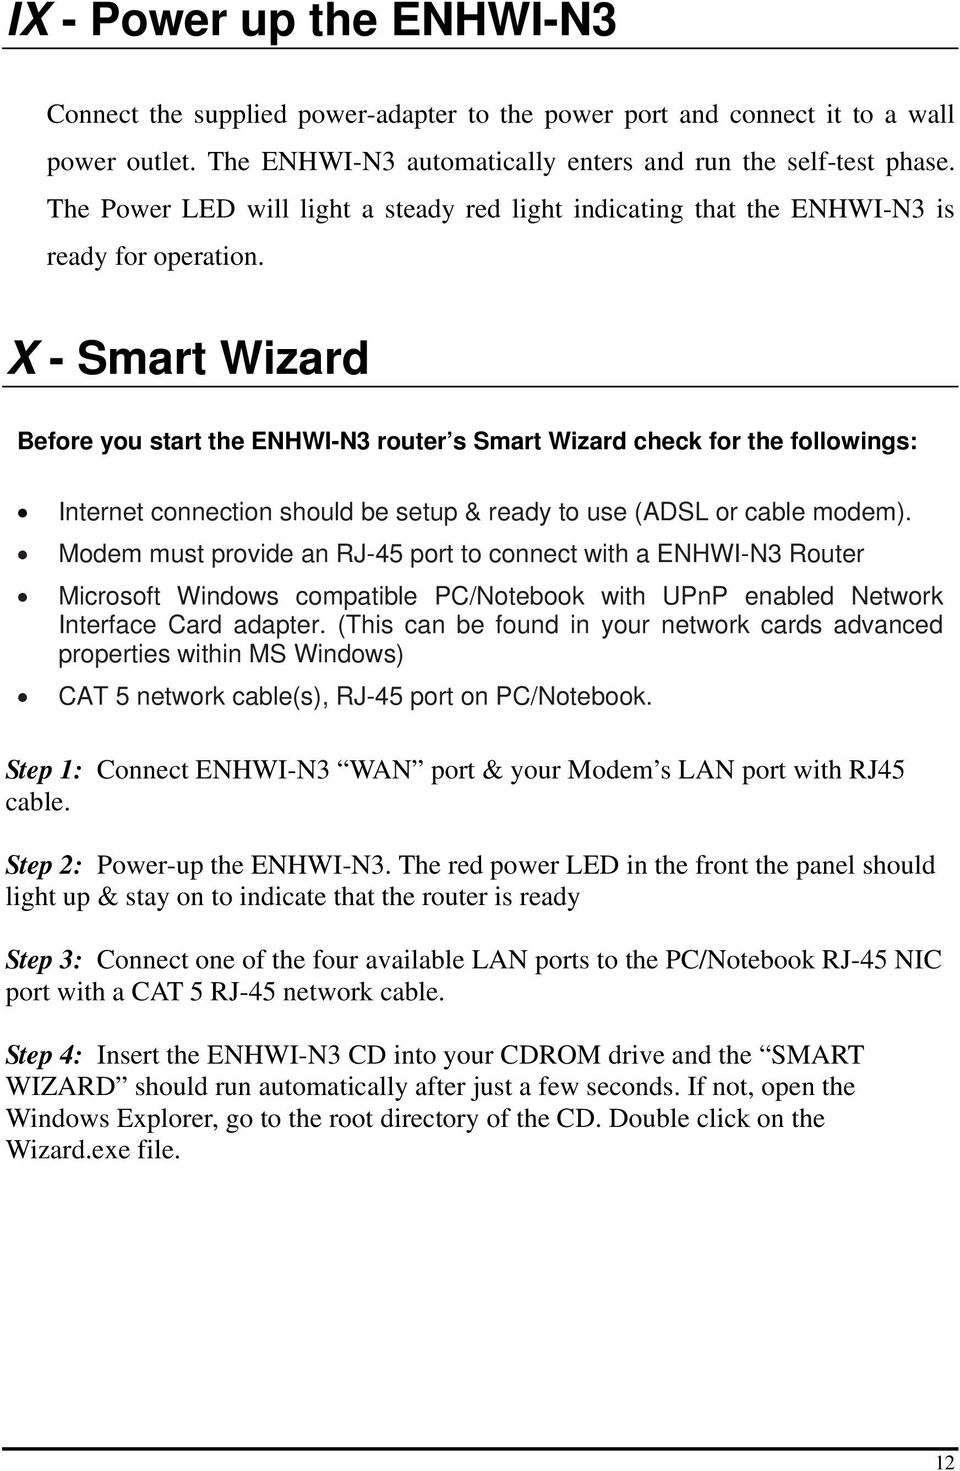 X - Smart Wizard Before you start the ENHWI-N3 router s Smart Wizard check for the followings: Internet connection should be setup & ready to use (ADSL or cable modem).